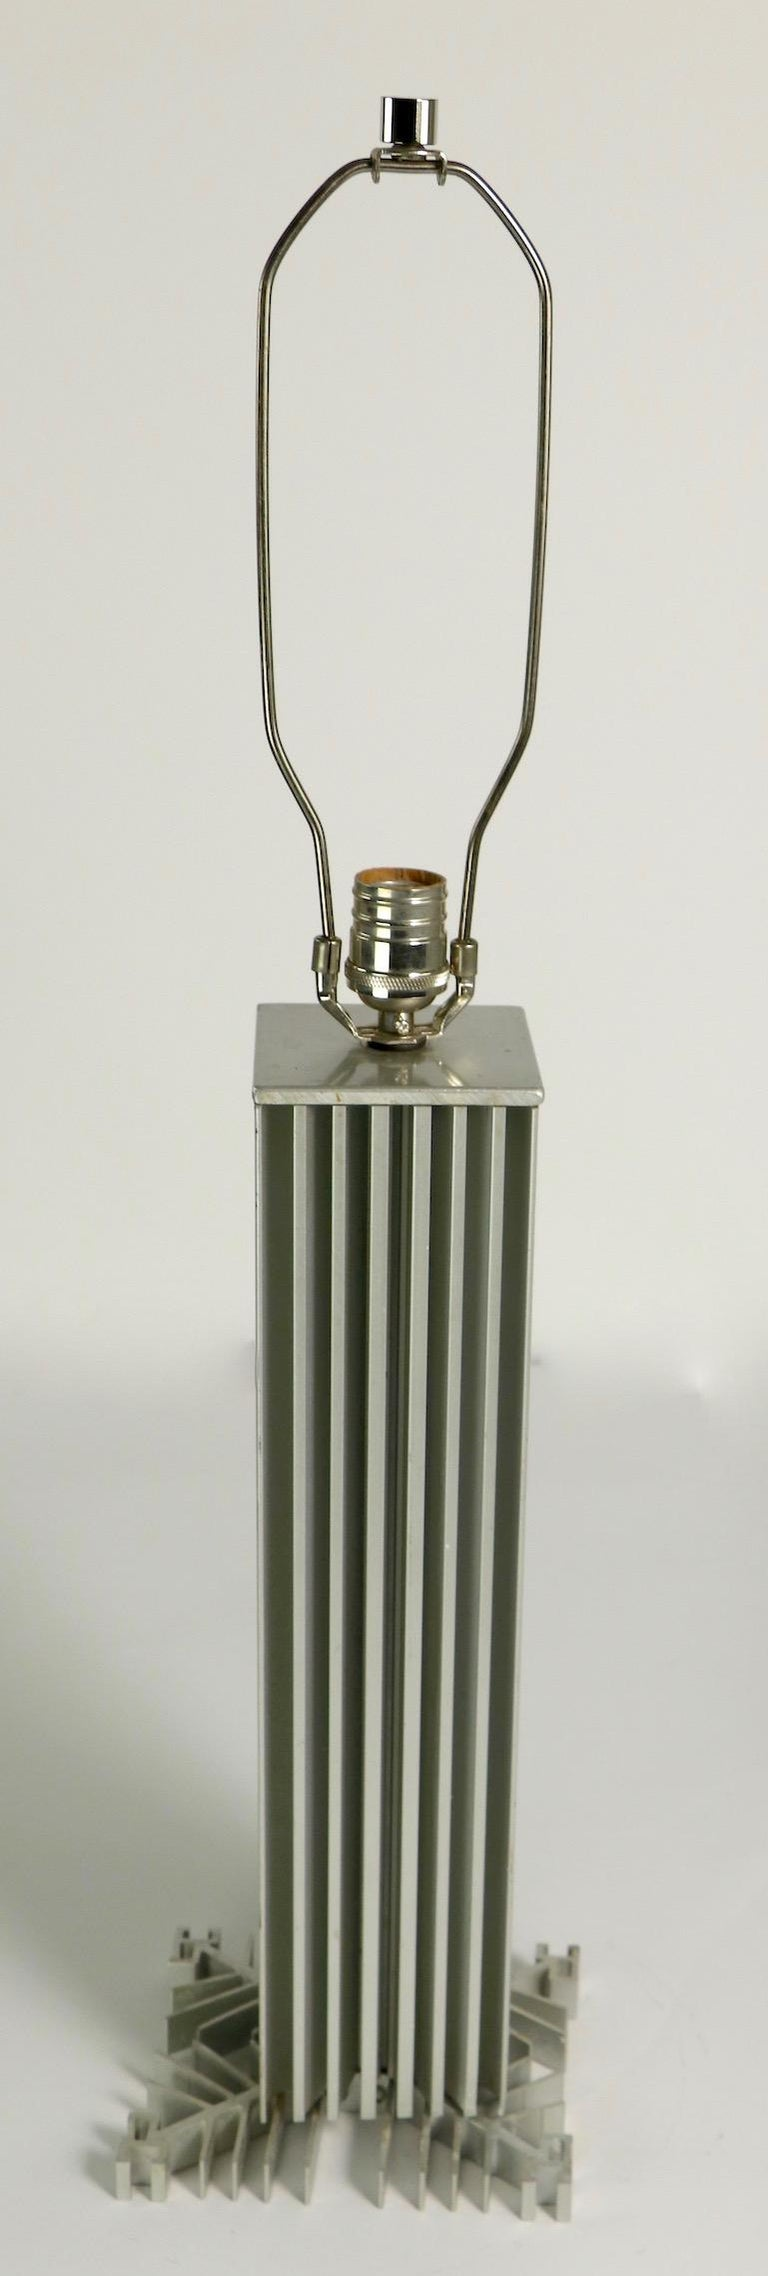 Skyscraper Form Machined Aluminum Table Lamp For Sale 1